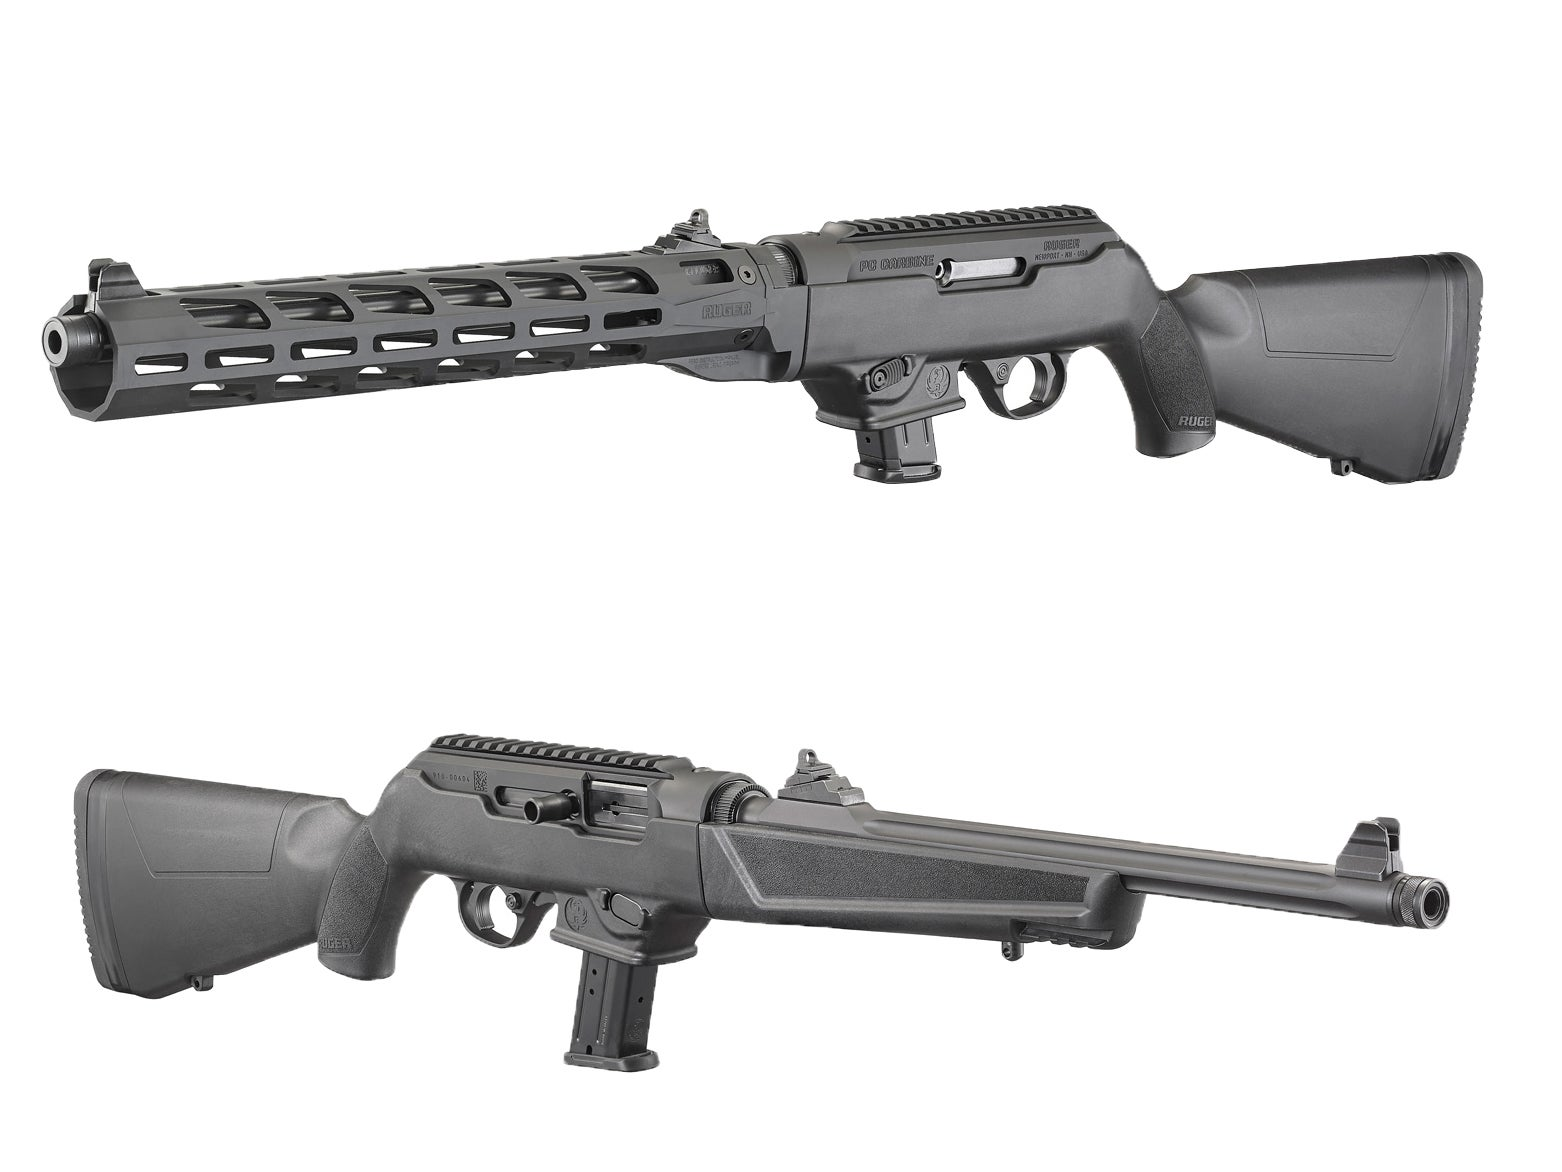 Ruger Releases M-LOK PC Carbine in 9mm + 40 S&W Models